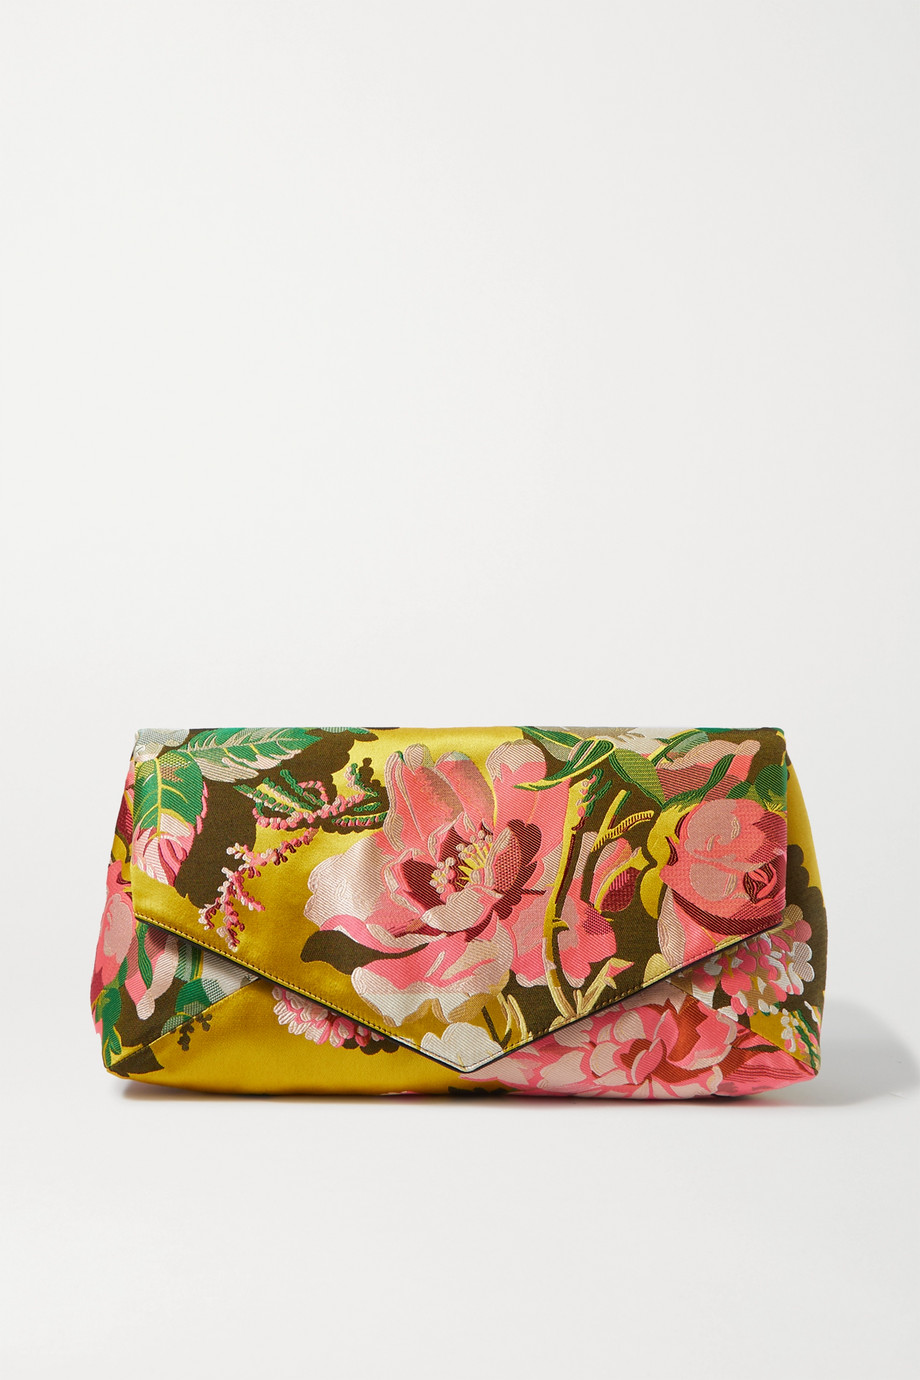 Dries Van Noten Envelope large floral satin-jacquard clutch